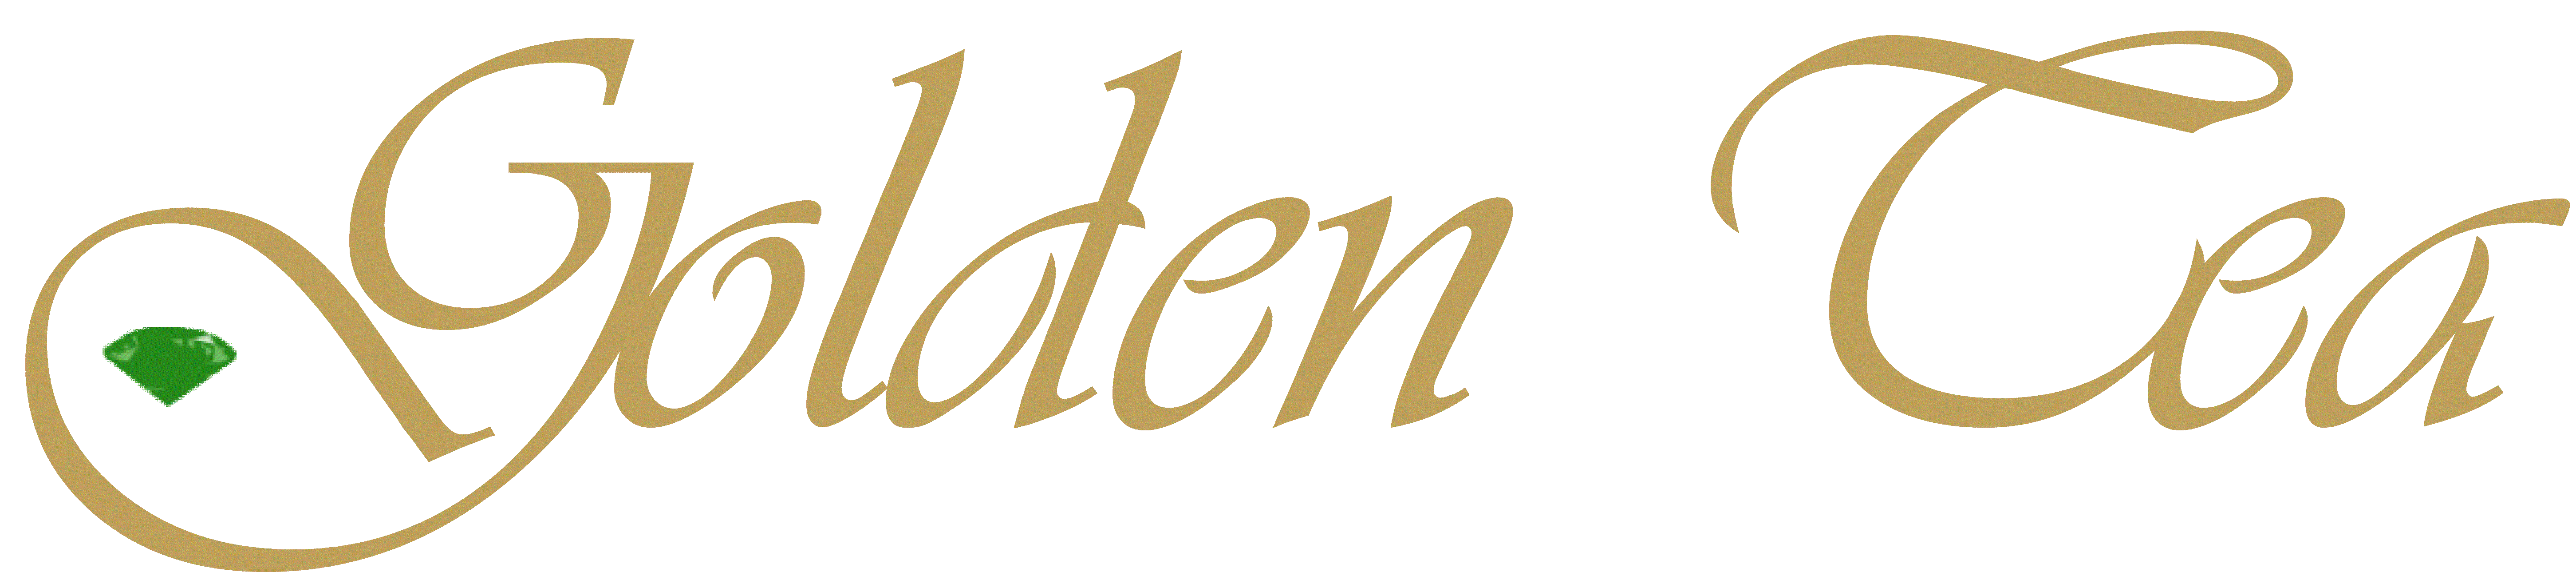 deski golden tea logo